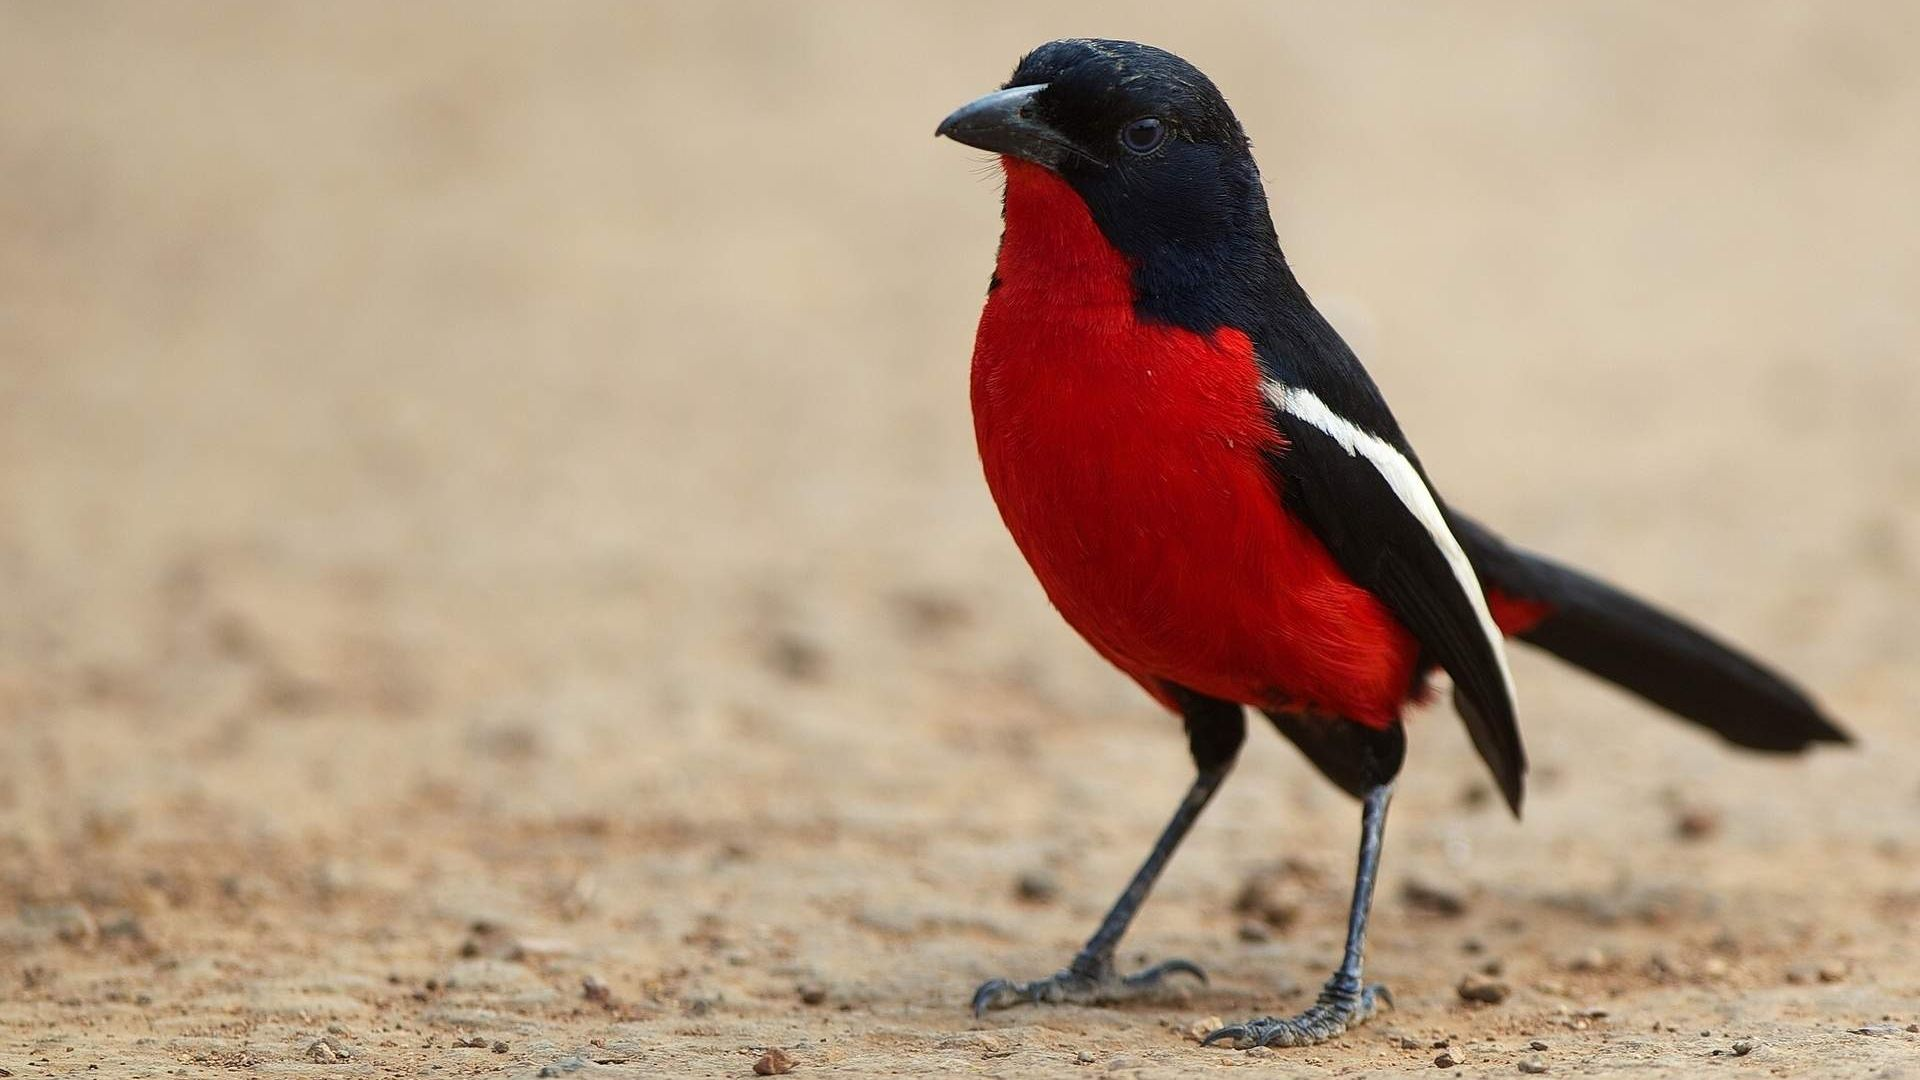 Wallpaper Red bird with black wings